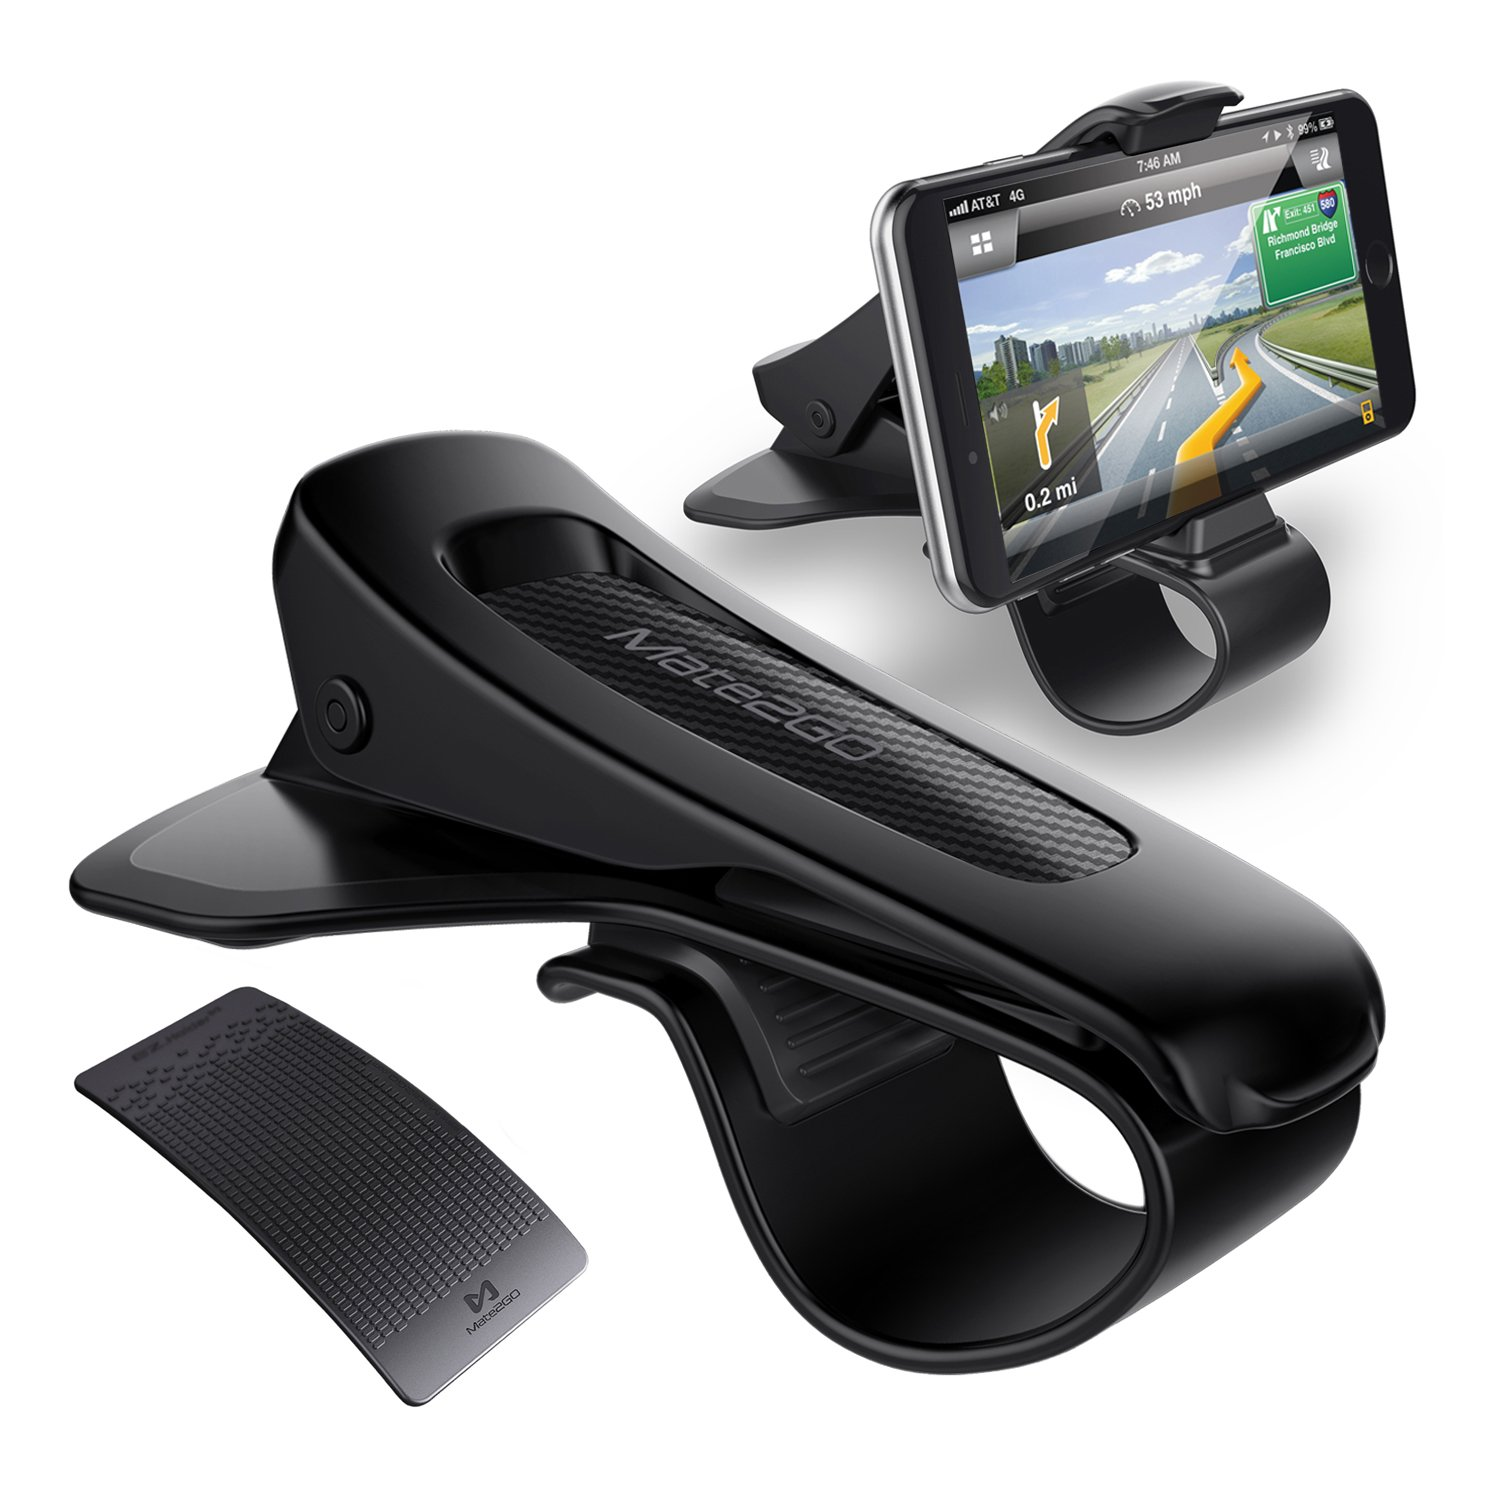 Car Phone Holder, Mate2GO Car Mount HUD Design with Anti-Slip Mat, No Blocking for Sight, Durable Dashboard Cell Phone Holder for iPhone X 8 7/7Plus/6Plus, Samsung, Huawei, 3.5-6.5 Inches Smartphones 4336806135